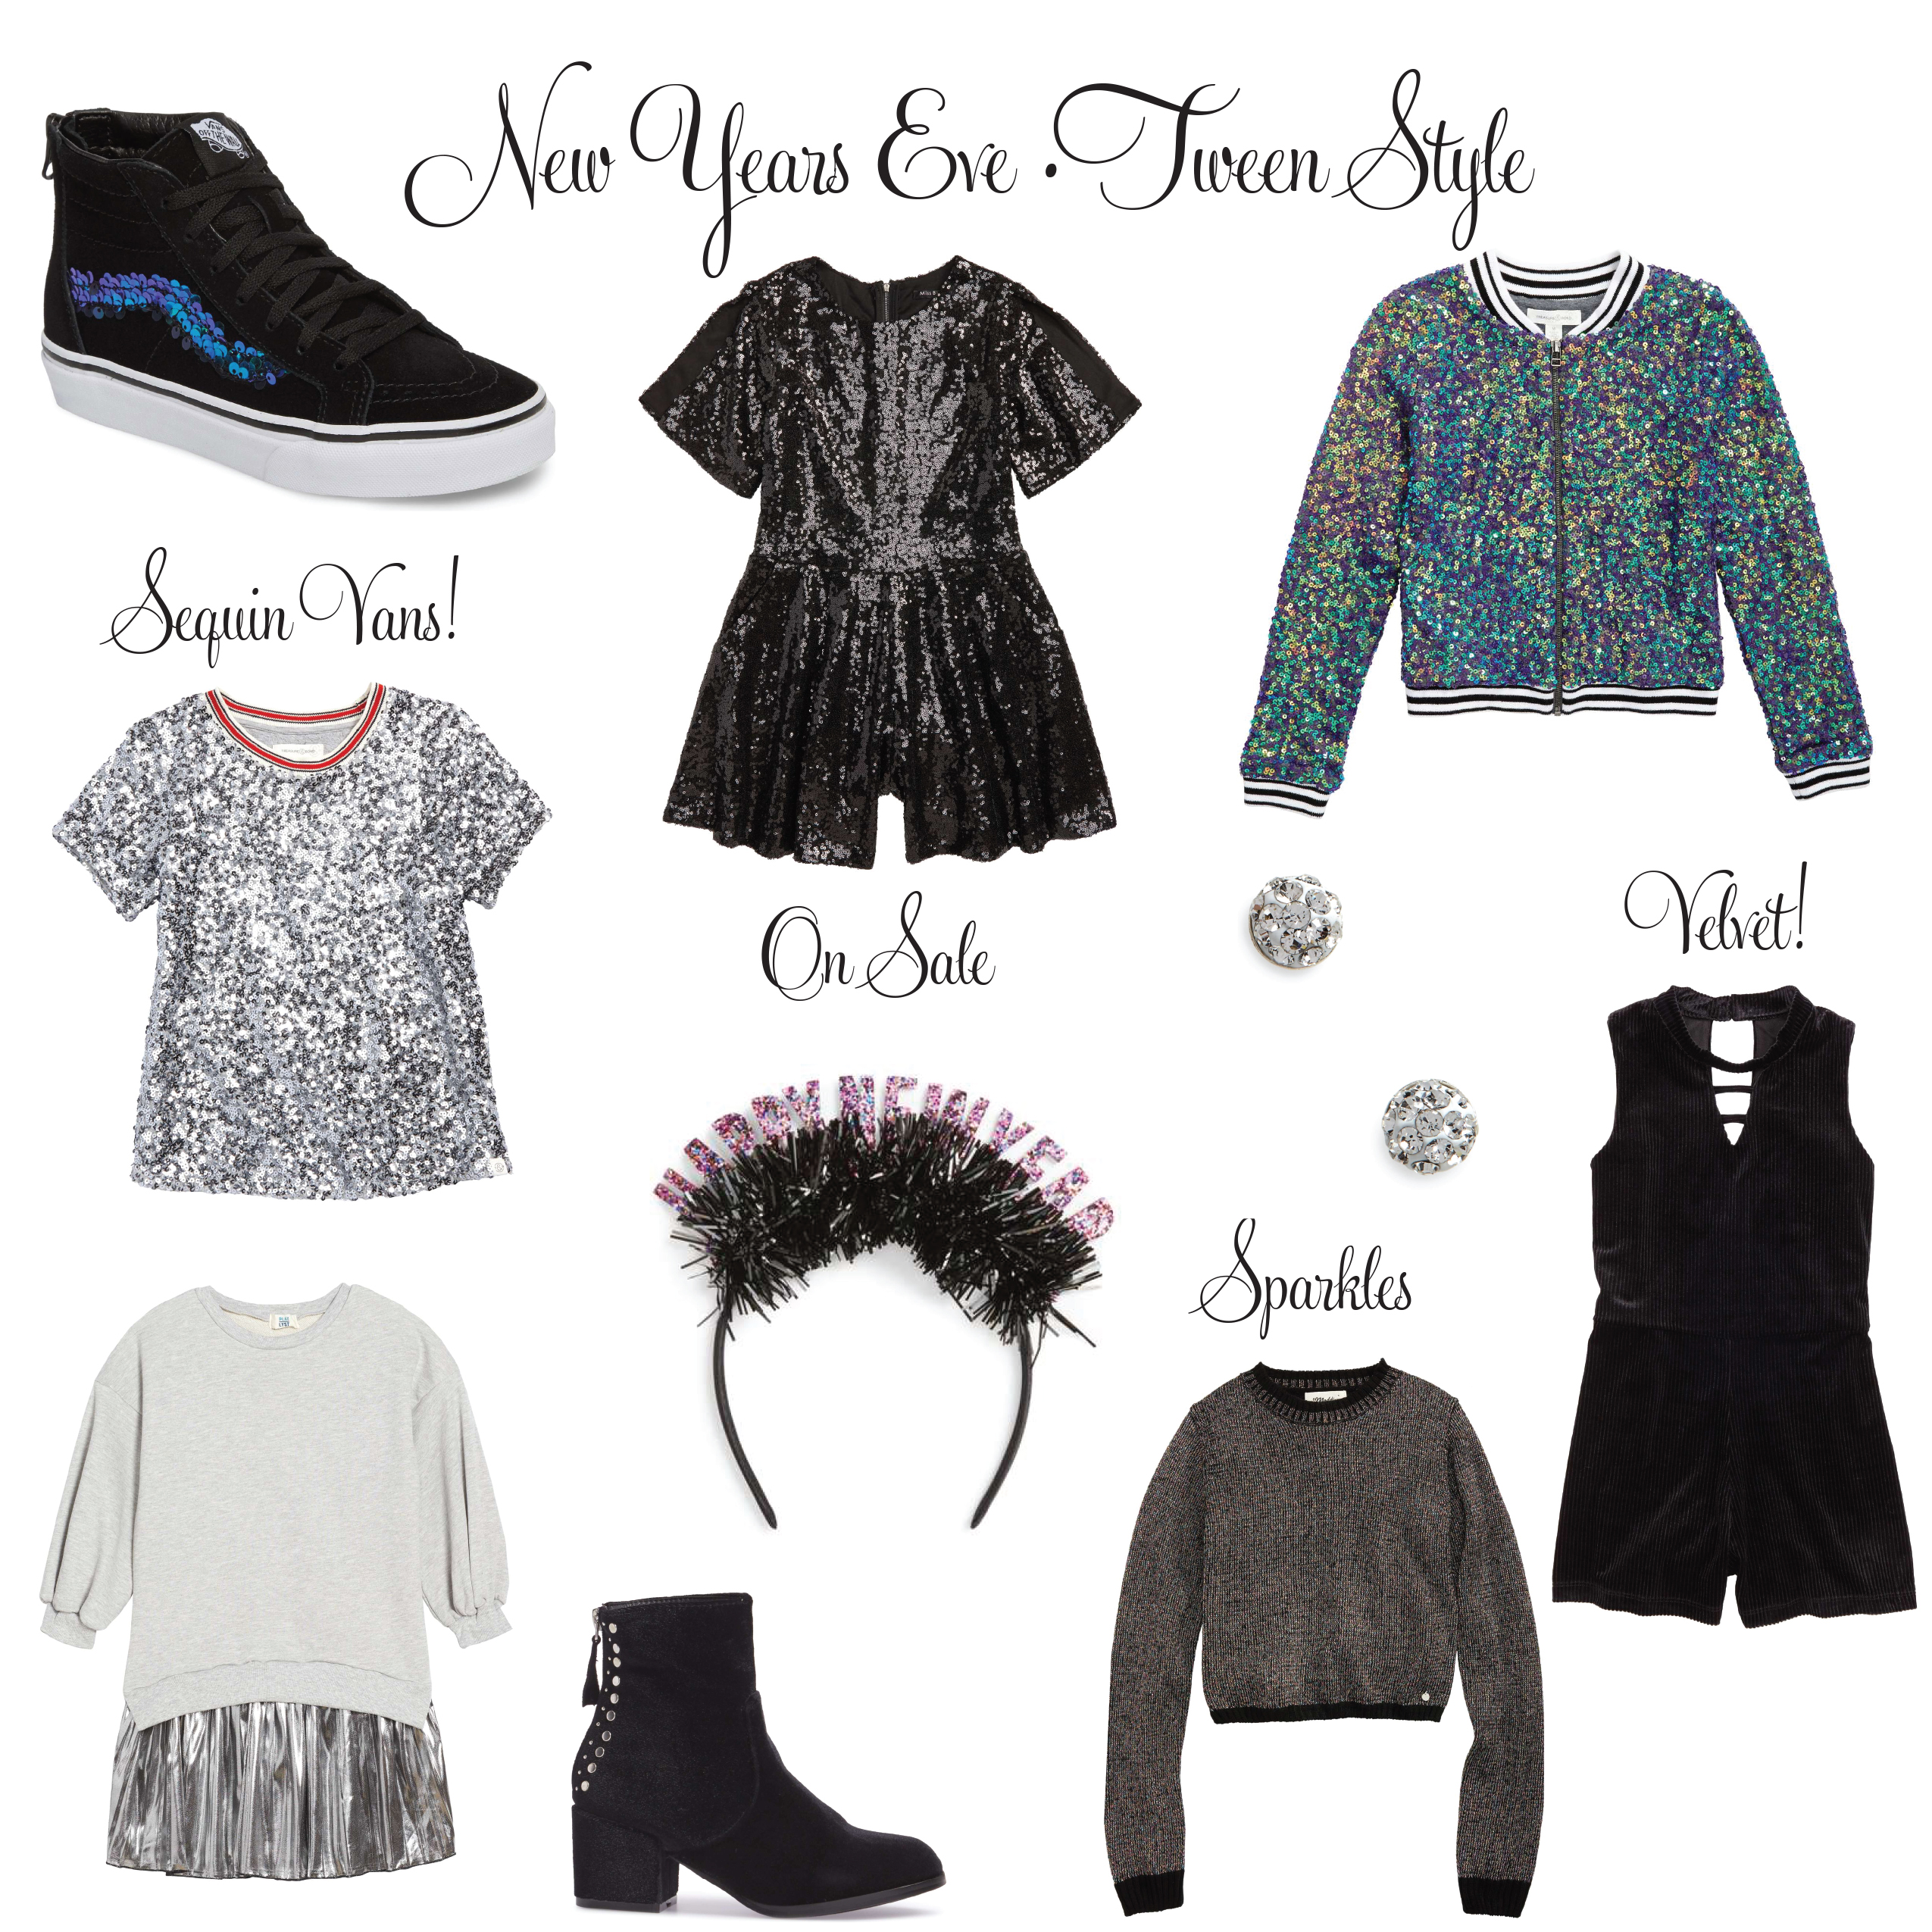 New Years Eve Tween Style Ideas!